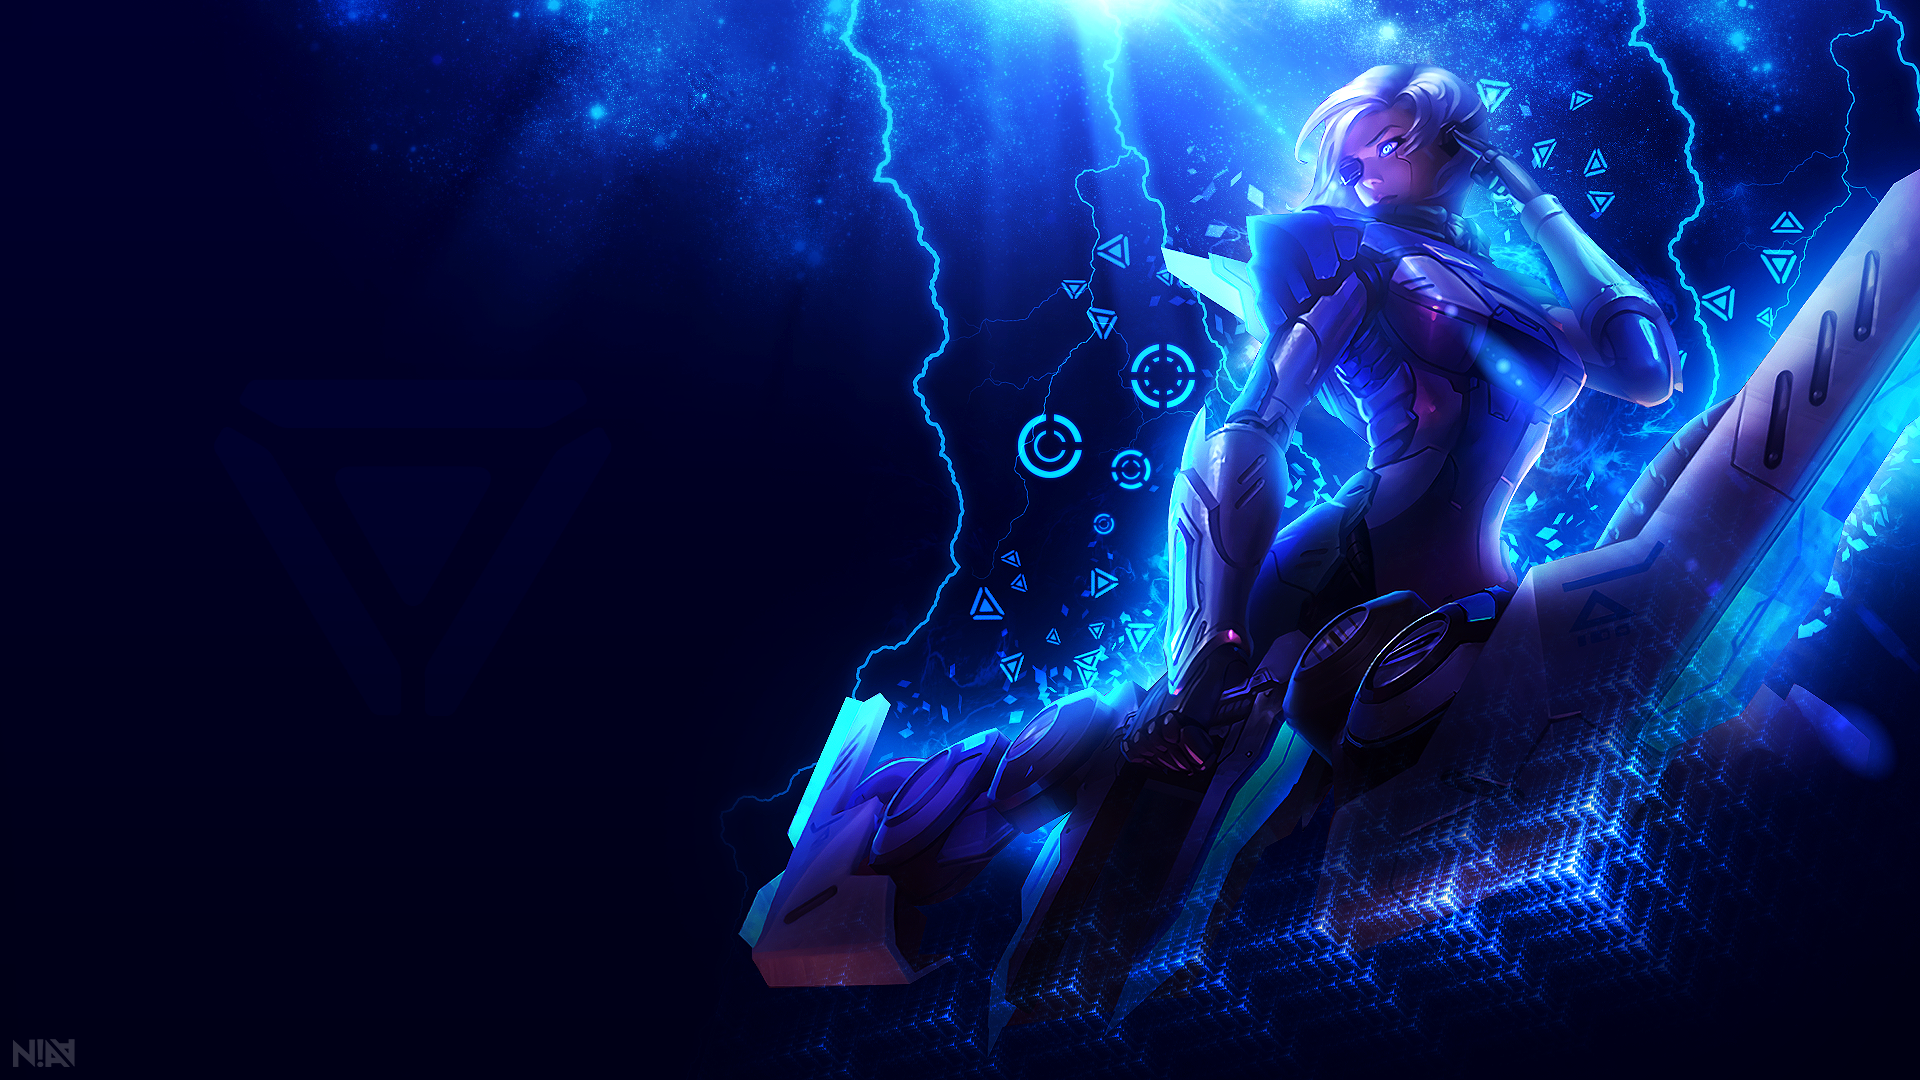 Project Ashe Wallpaper 1920x1080 Disruption By Aliceemad On